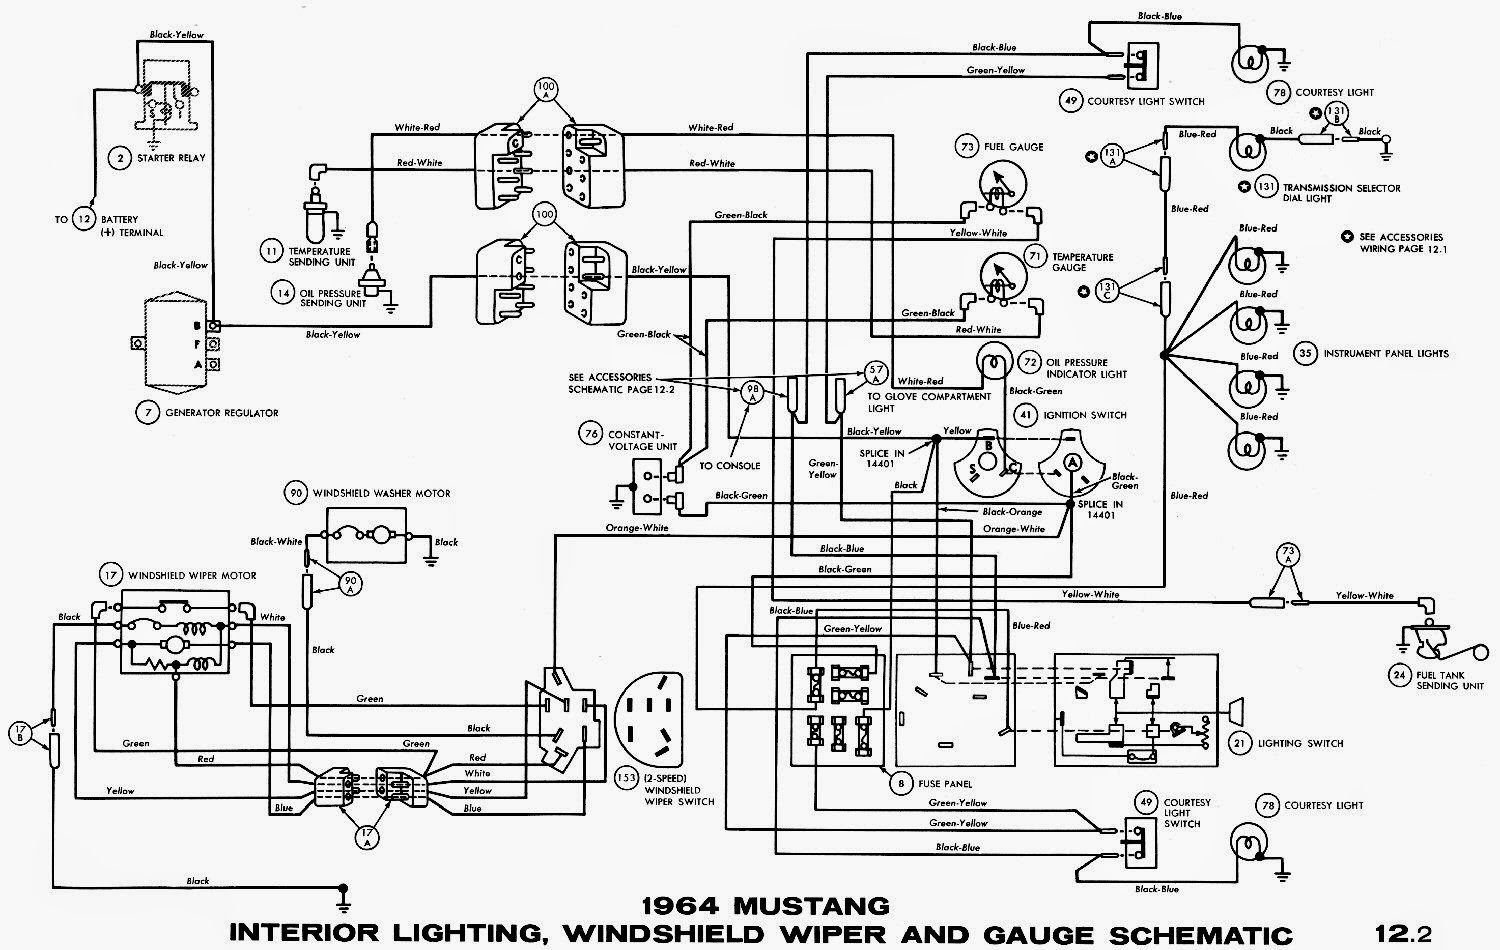 2015 mustang wiring diagram   27 wiring diagram images